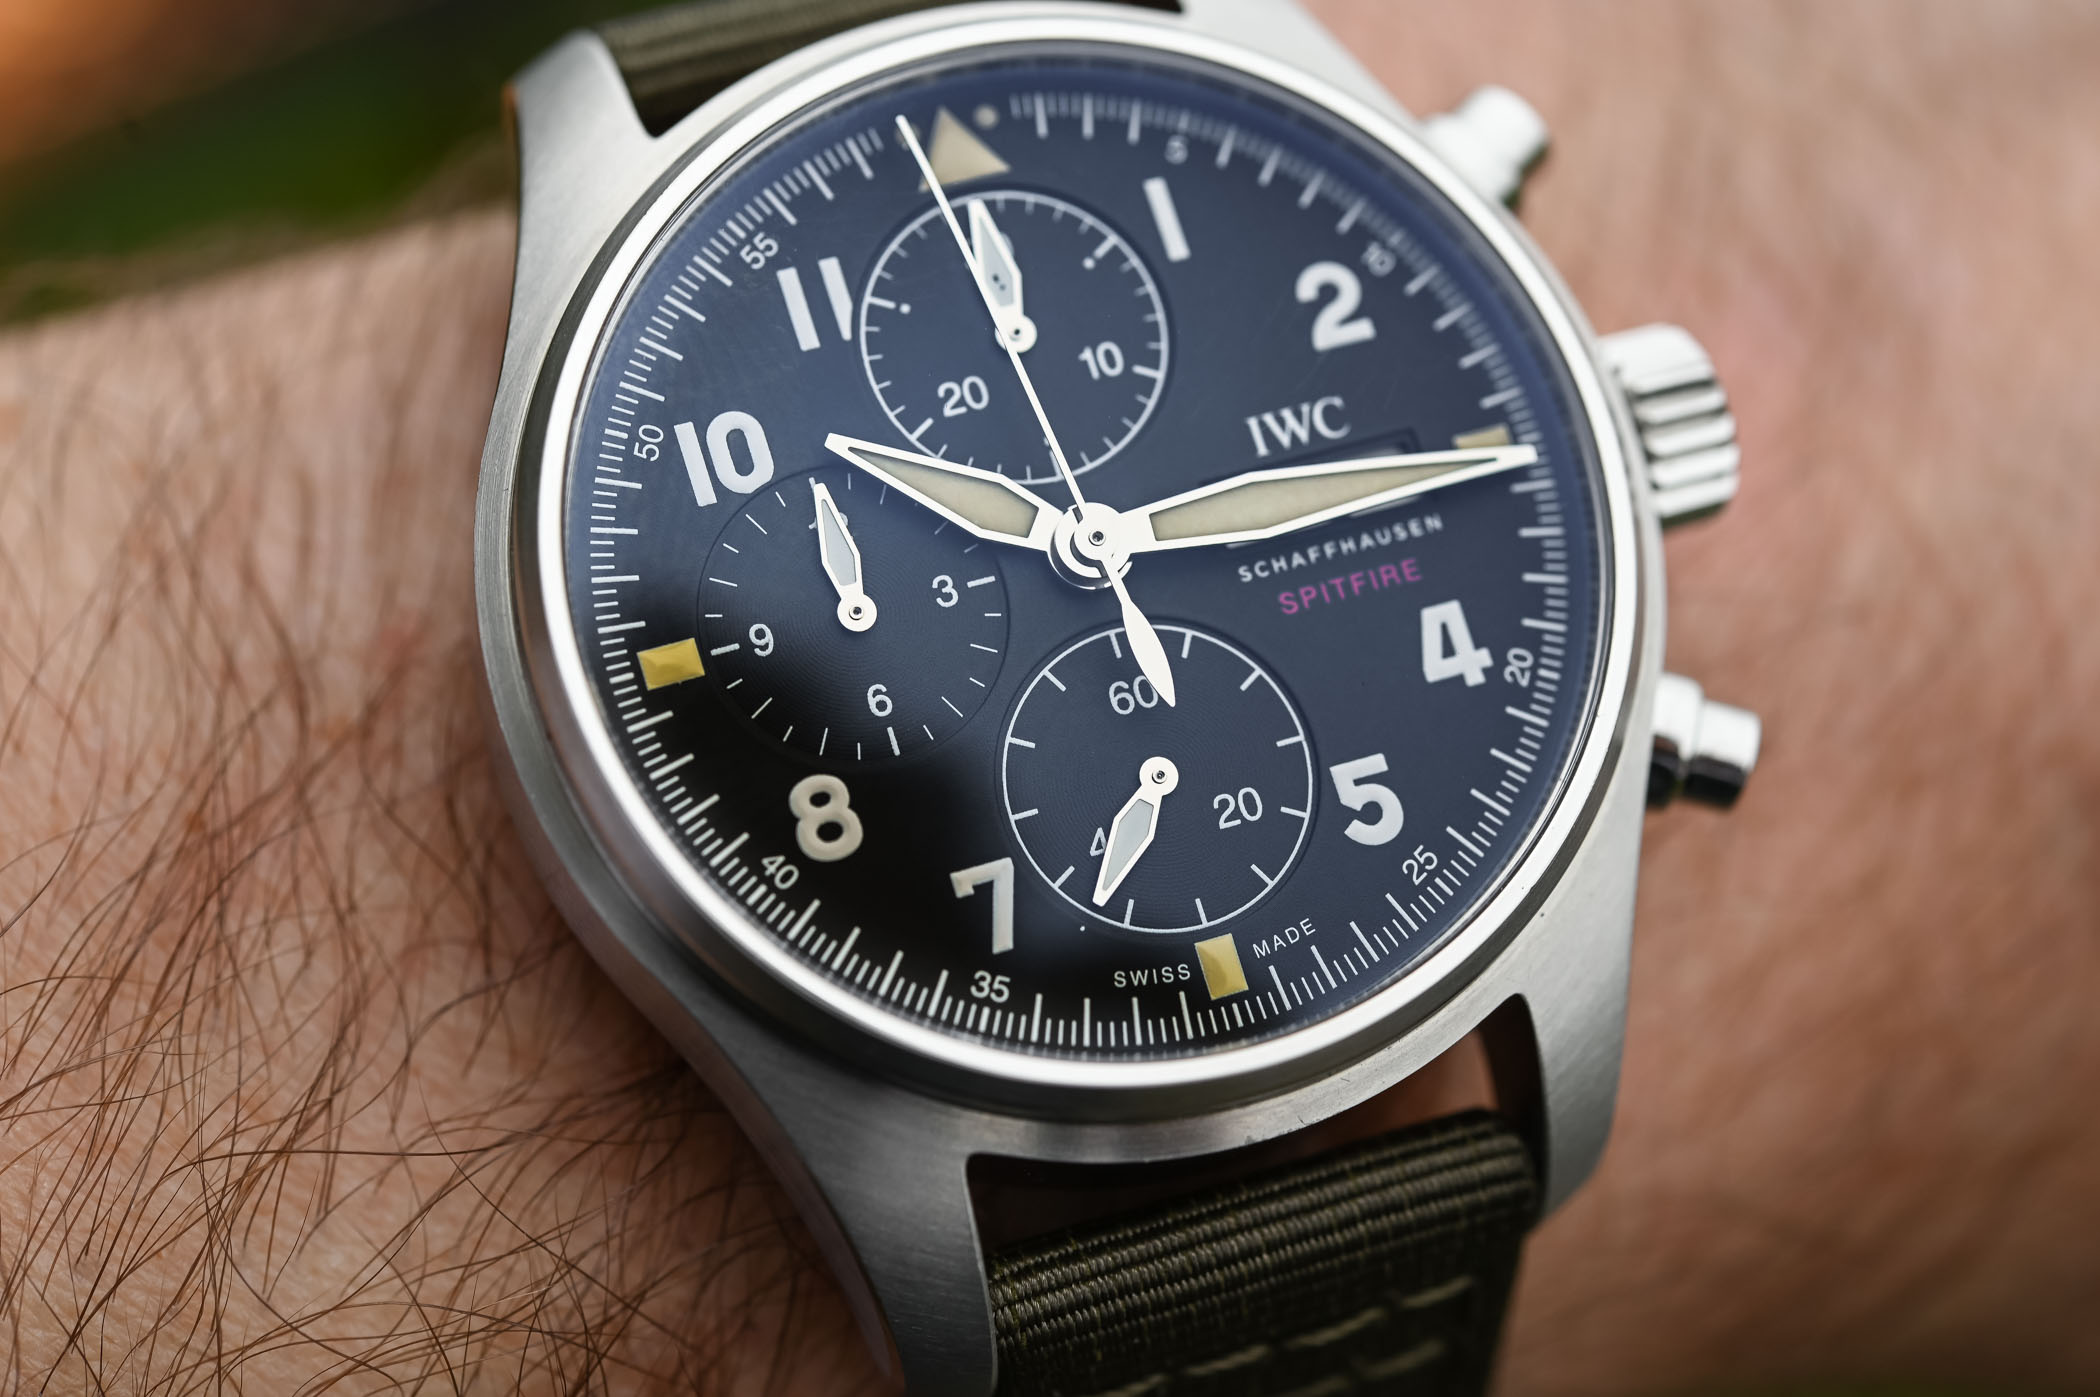 IWC Pilot's Watch Chronograph Spitfire Steel 41mm IW387901 - SIHH 2019 - 5